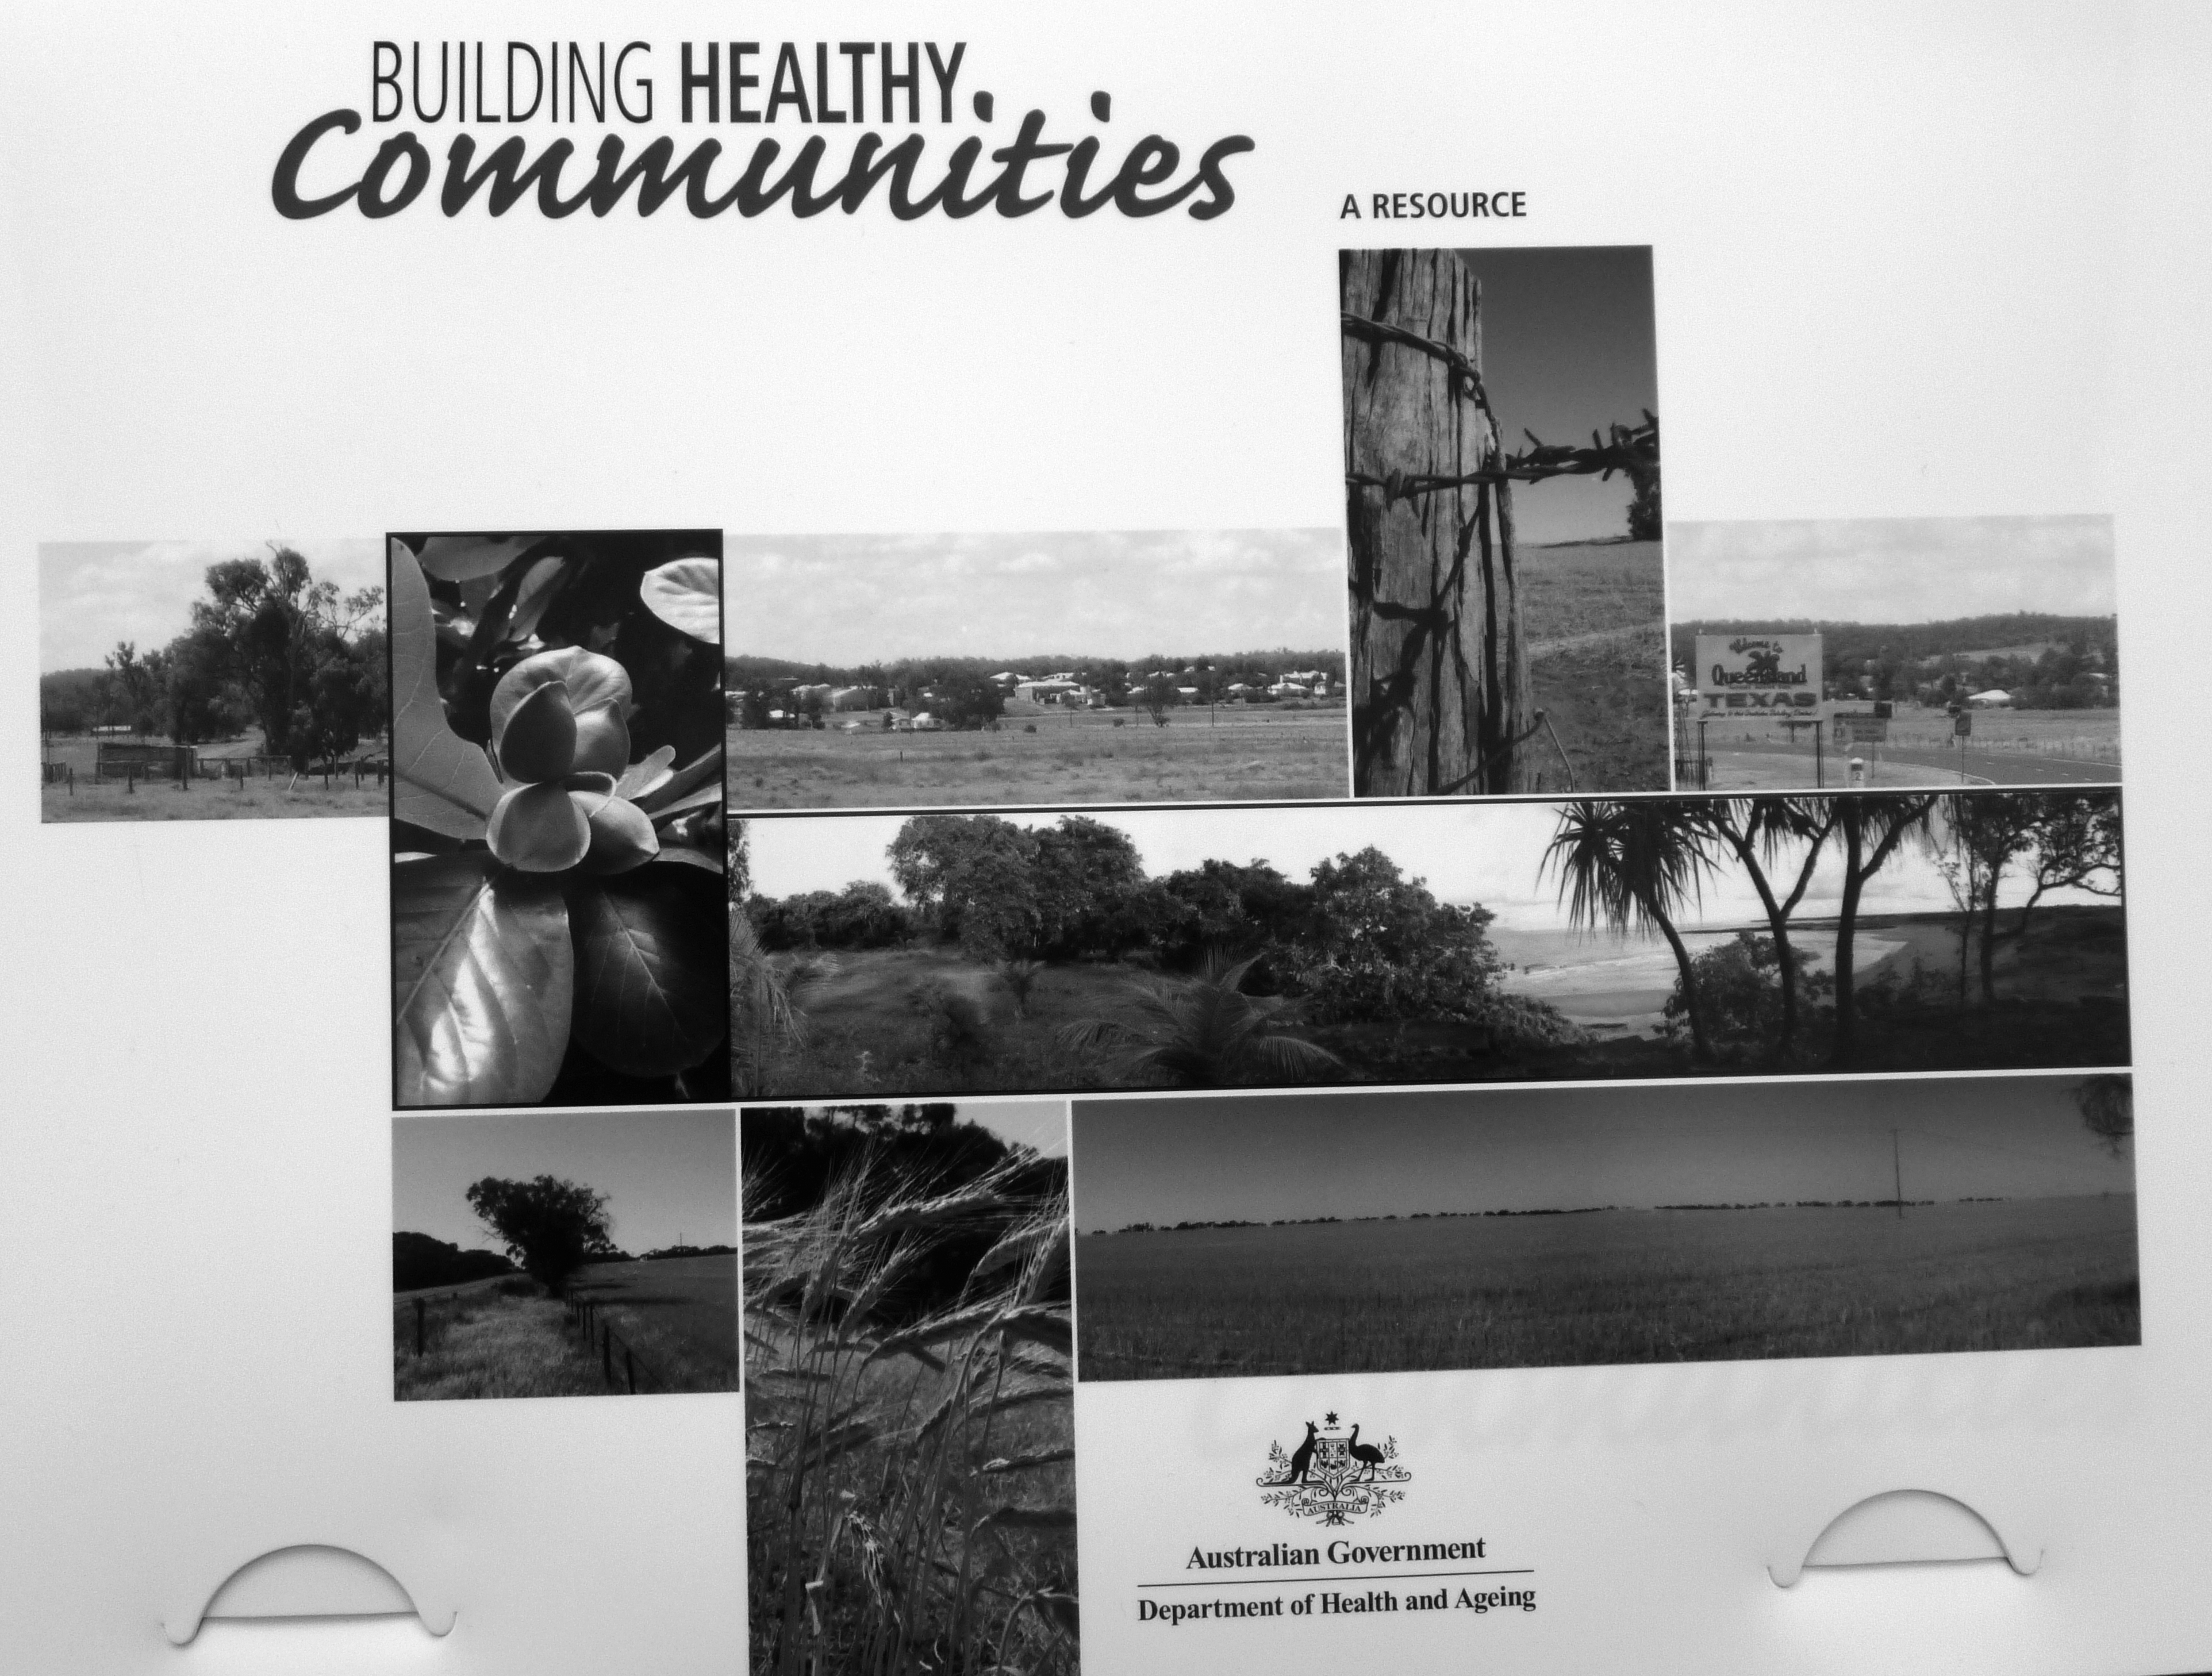 Building healthy communities - a guide for community projects